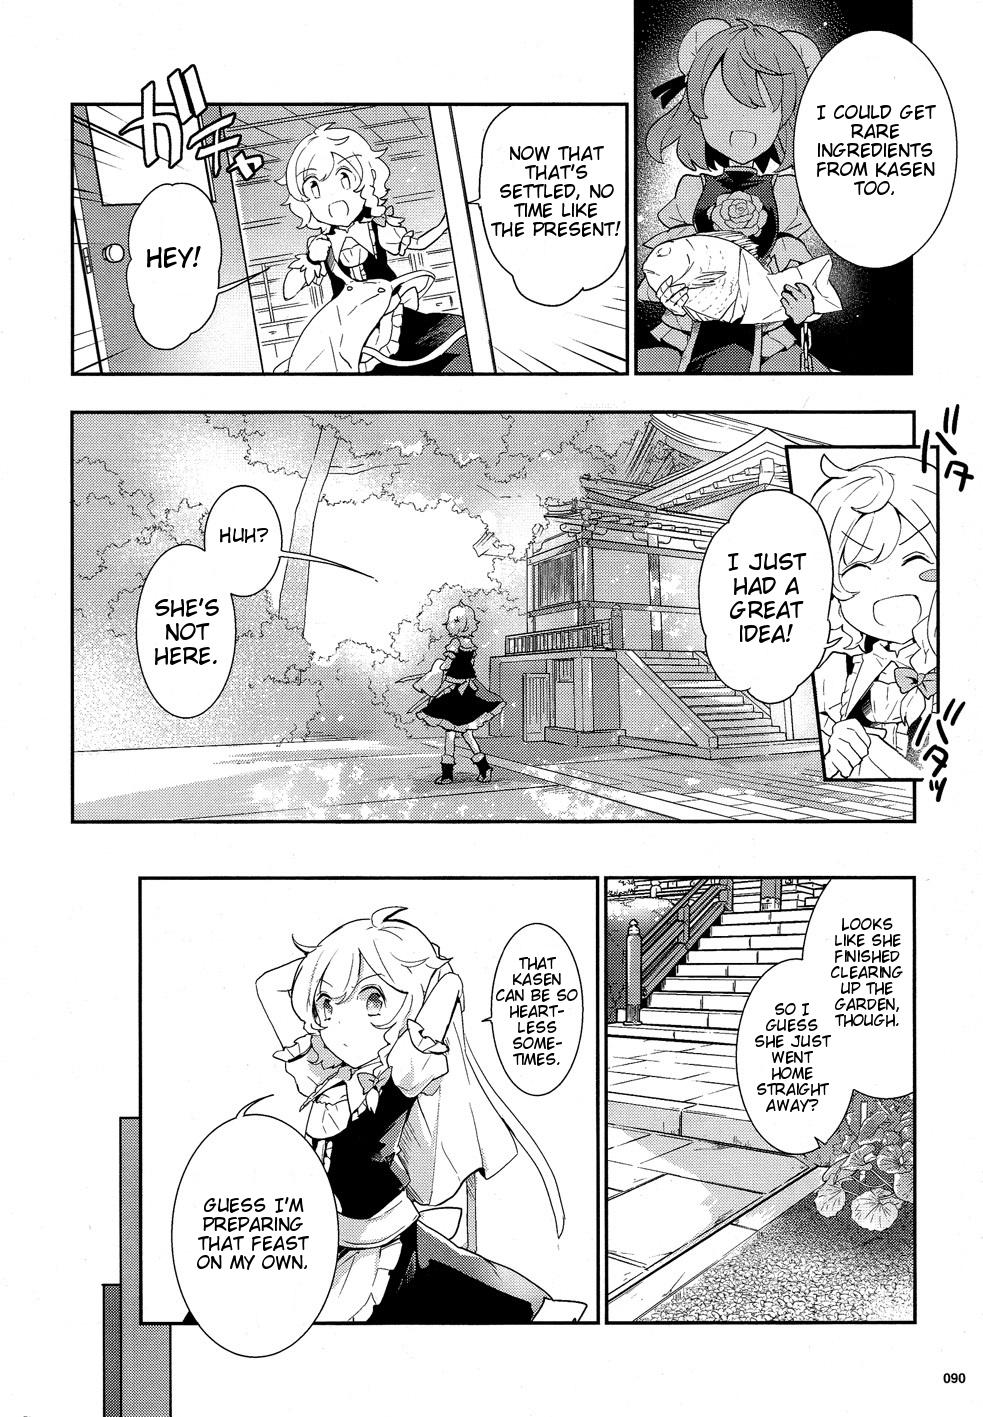 Touhou Ibarakasen - Wild and Horned Hermit - Chapter 35